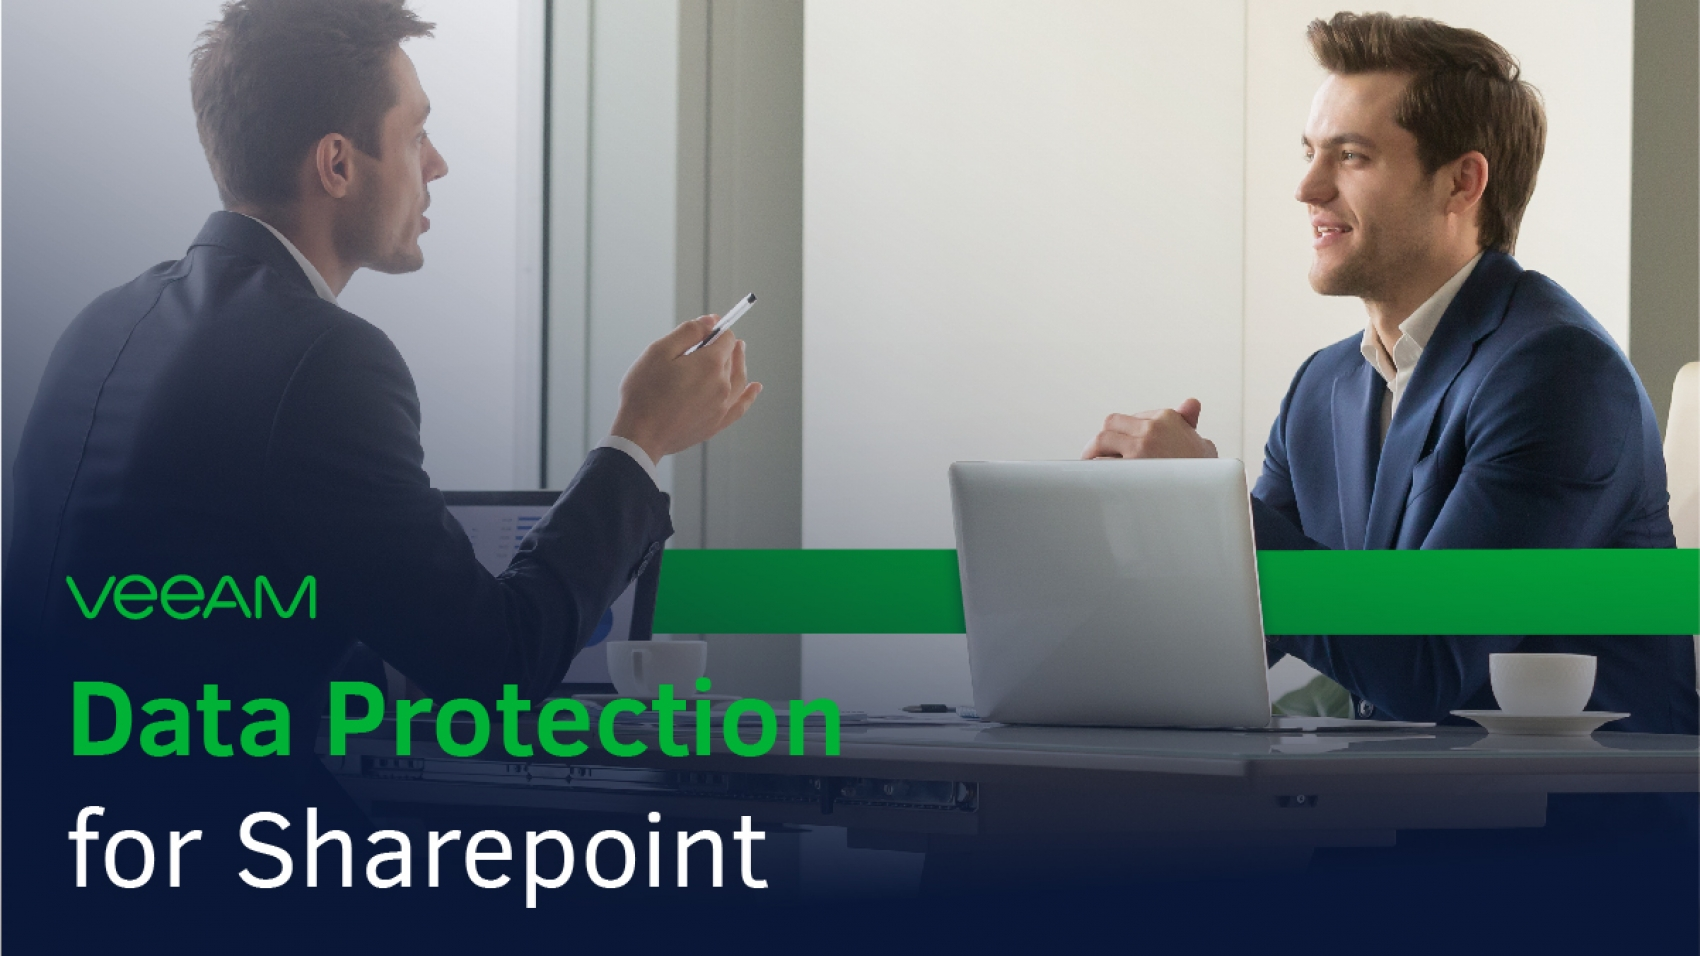 veeam-data-protection-for-sharepoint-2